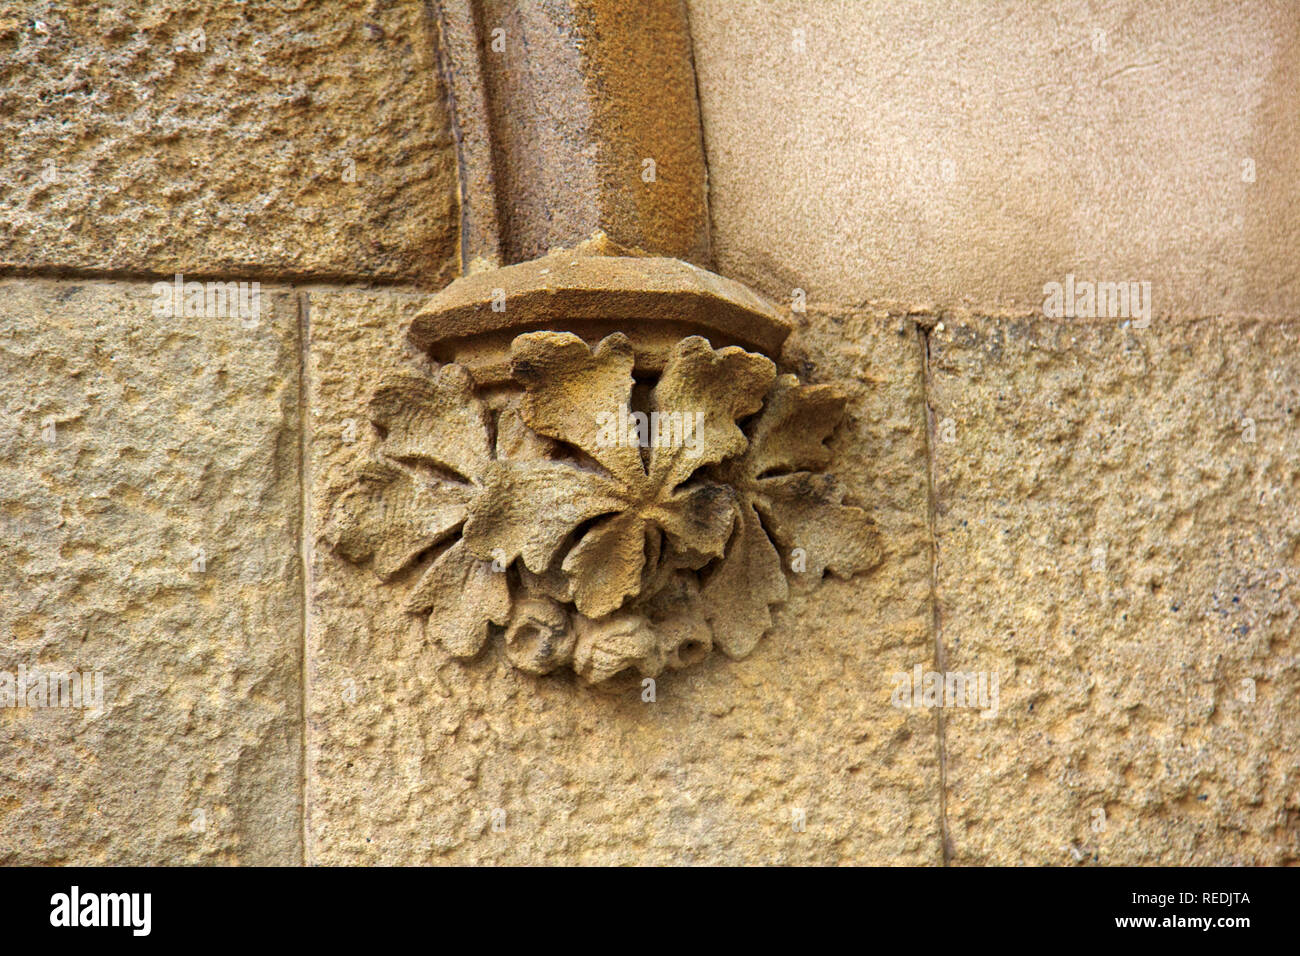 Stone Decorative Masverk In Ancient Cathedral Architectural Details On Building Stone Carving Aesthetic Frills Barcelona Stock Photo Alamy